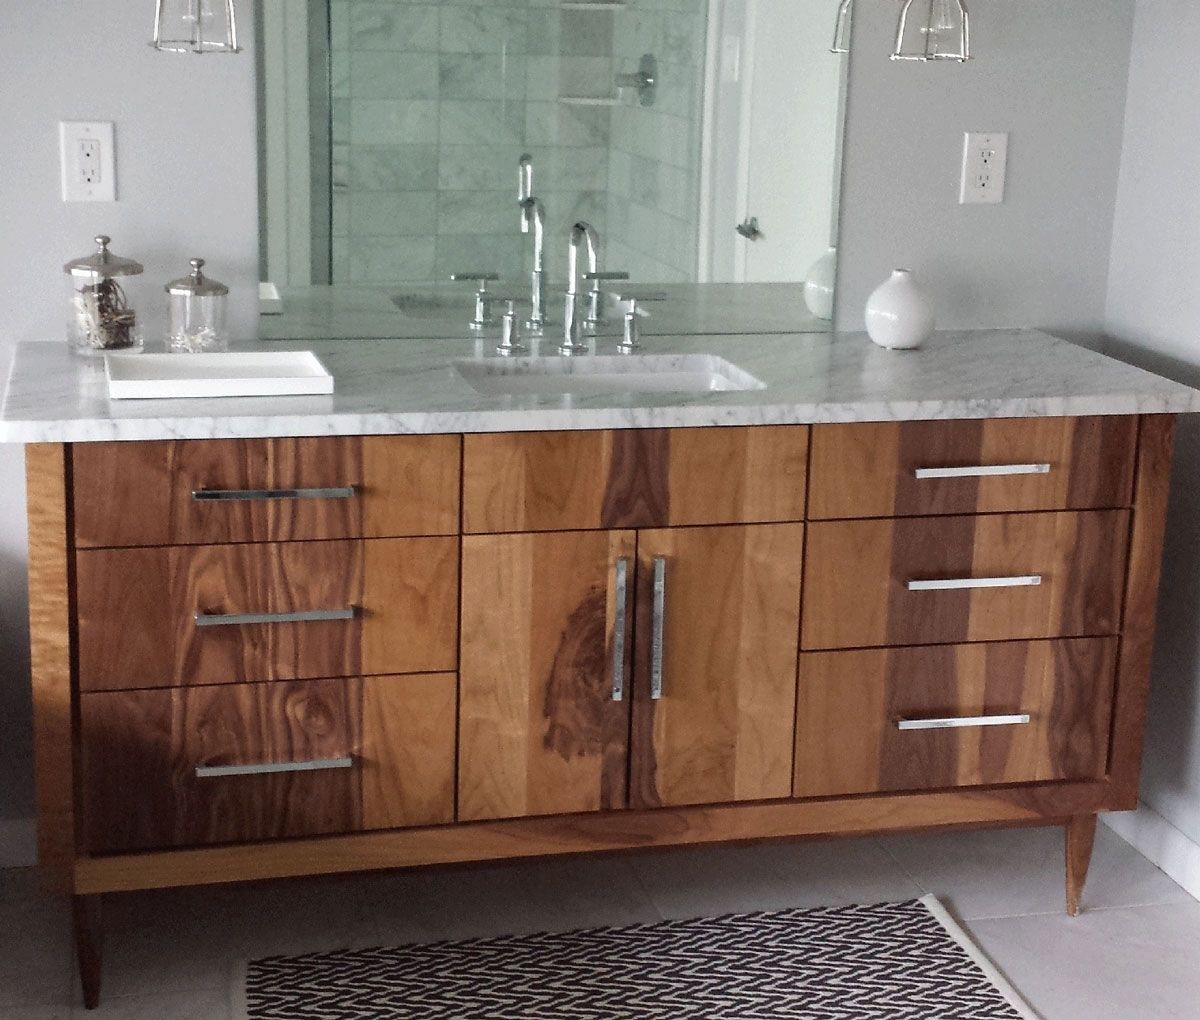 Handmade custom bathroom vanities by furniture by phoenix for Bathroom cabinet designs photos